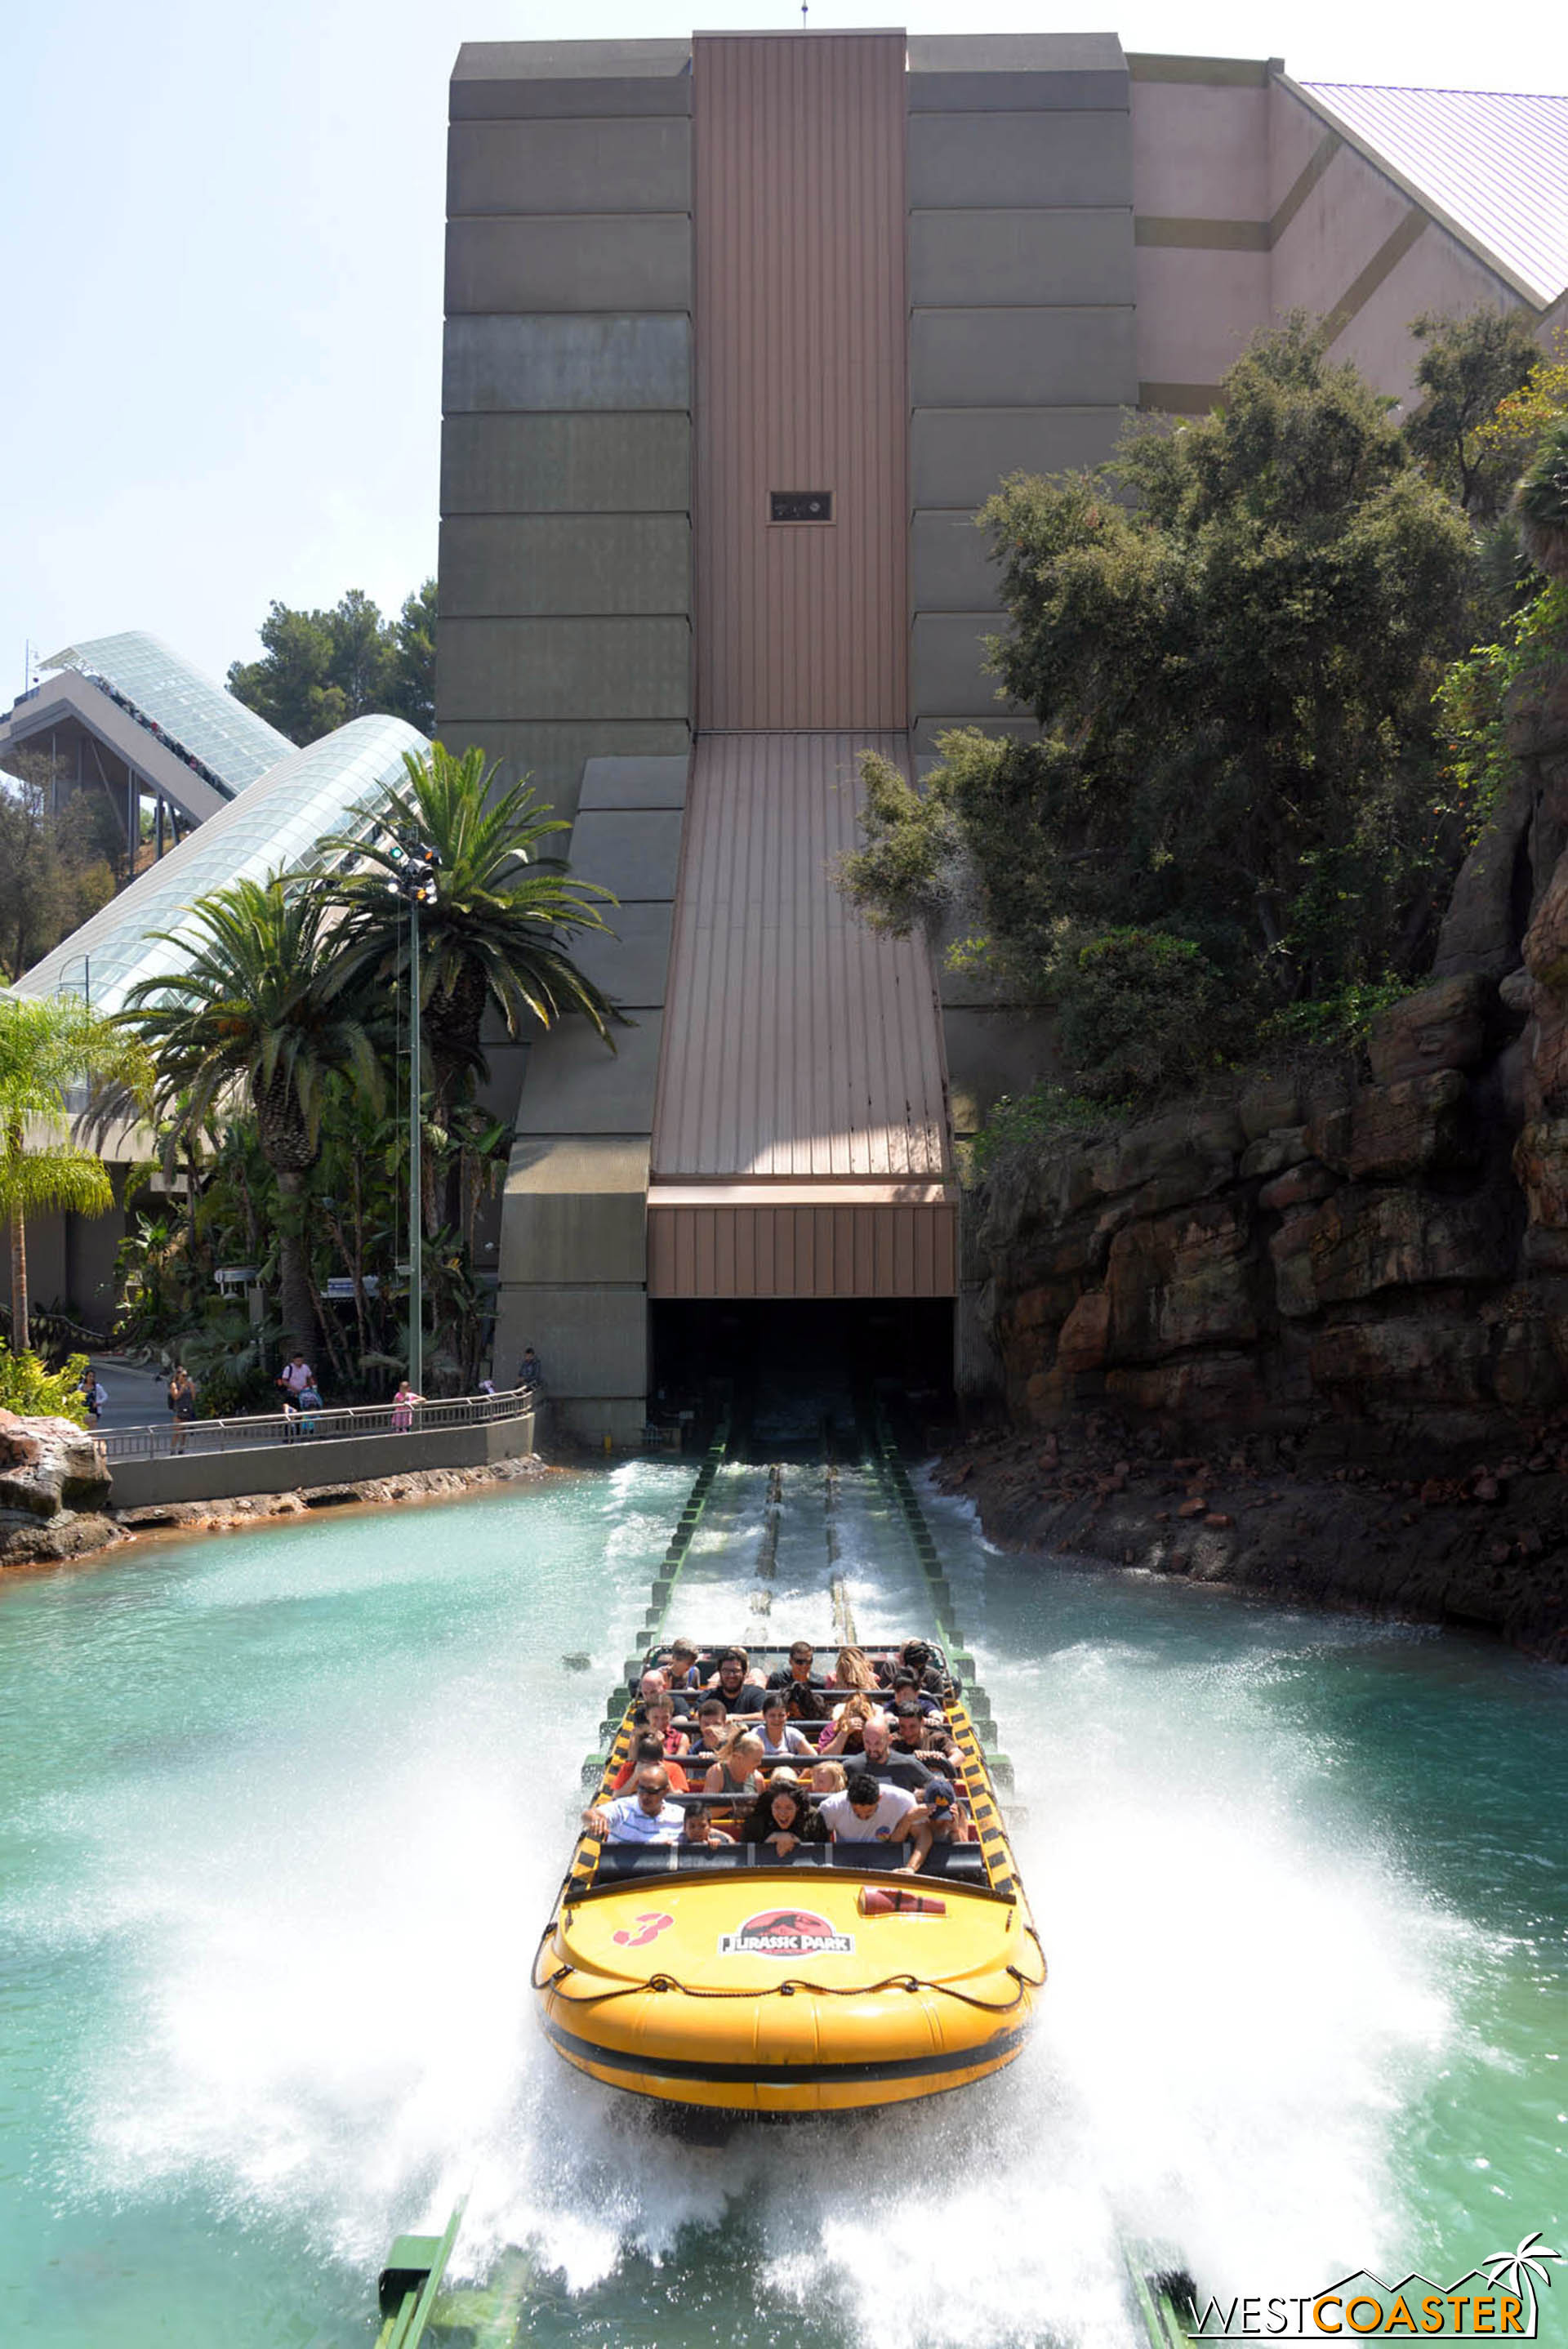 """The boats reached speeds up to 50mph coming out of the """"evacuation slide"""" from the JP Environmental Systems building."""